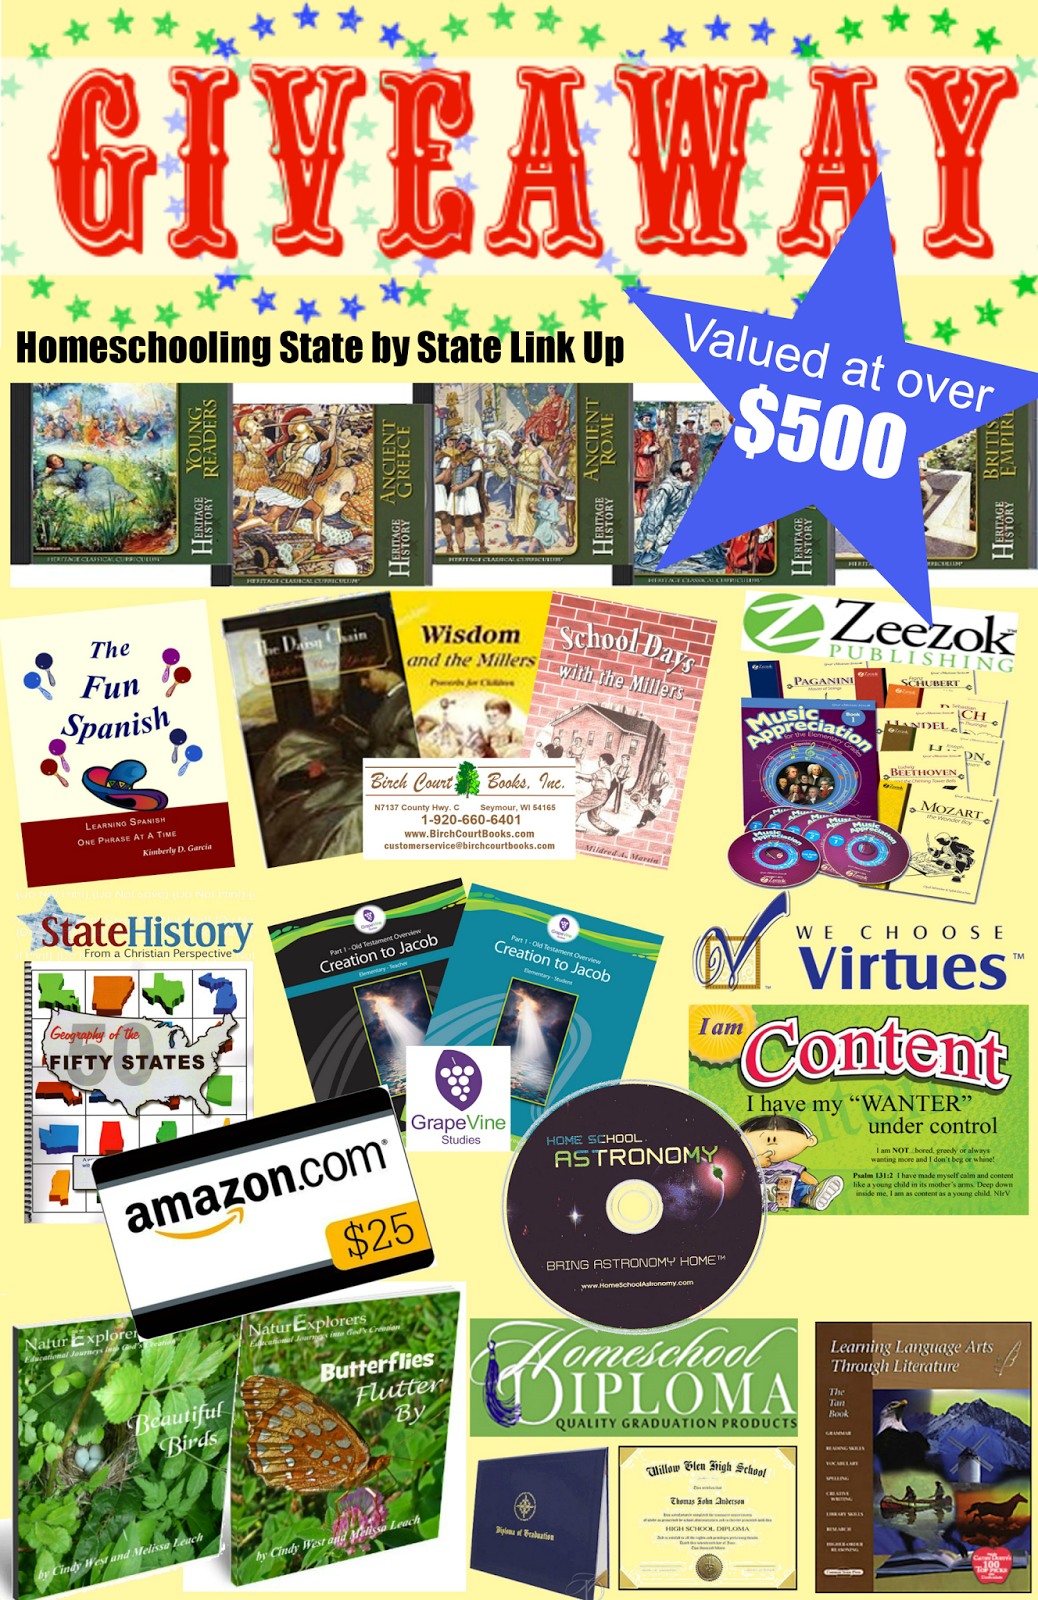 Homeschooling state by state link up & giveaway